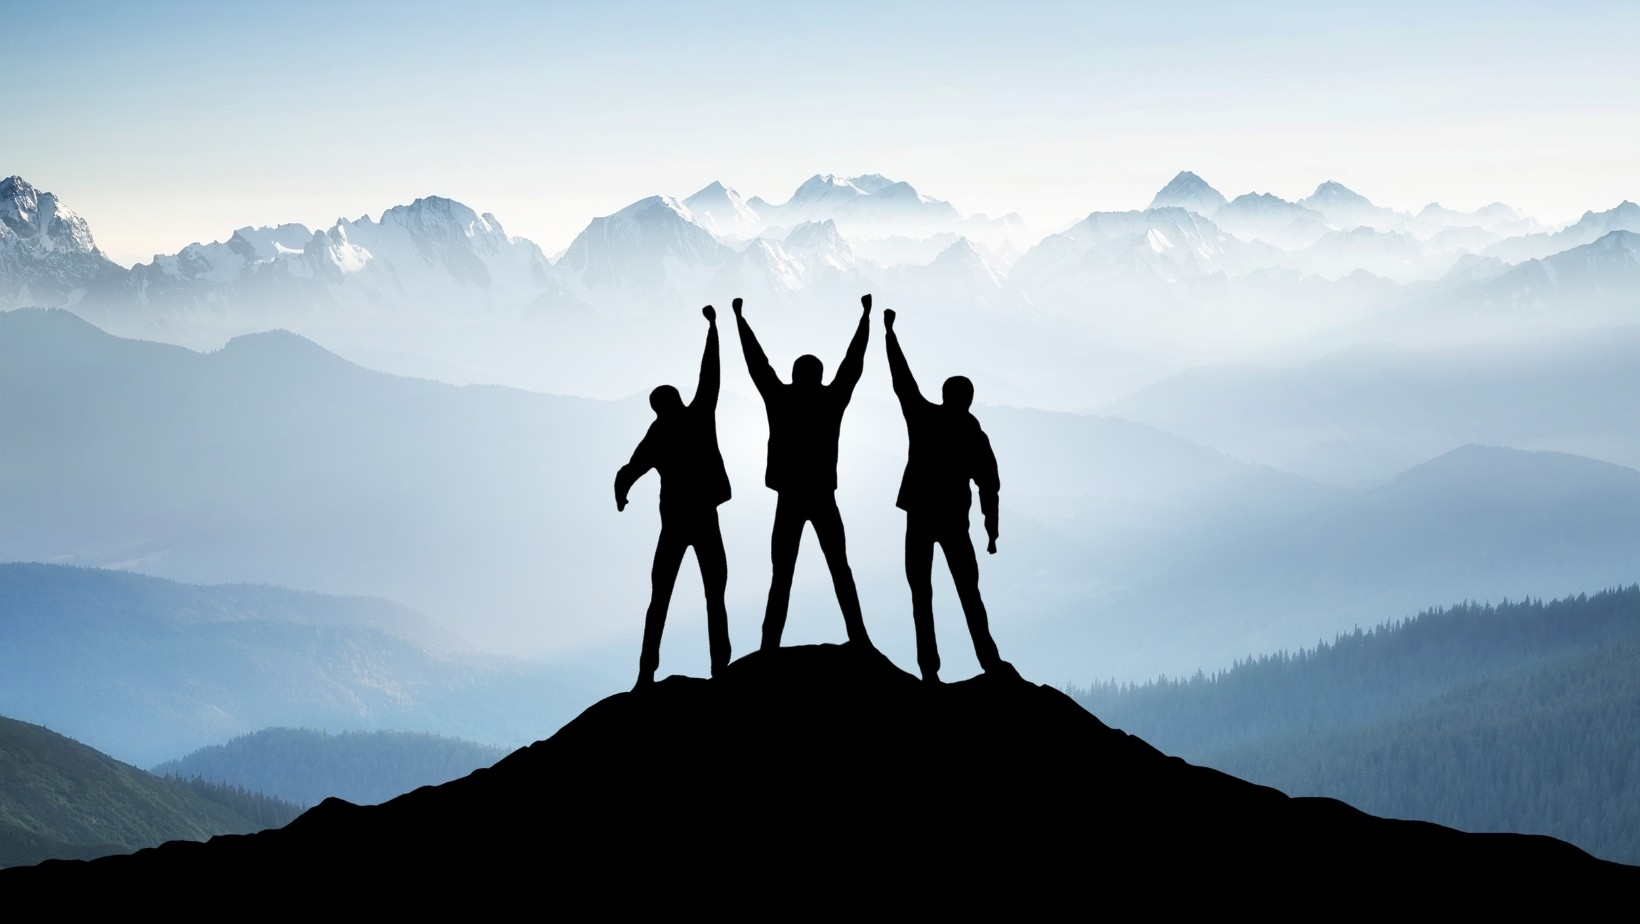 3 people on the top of the mountain